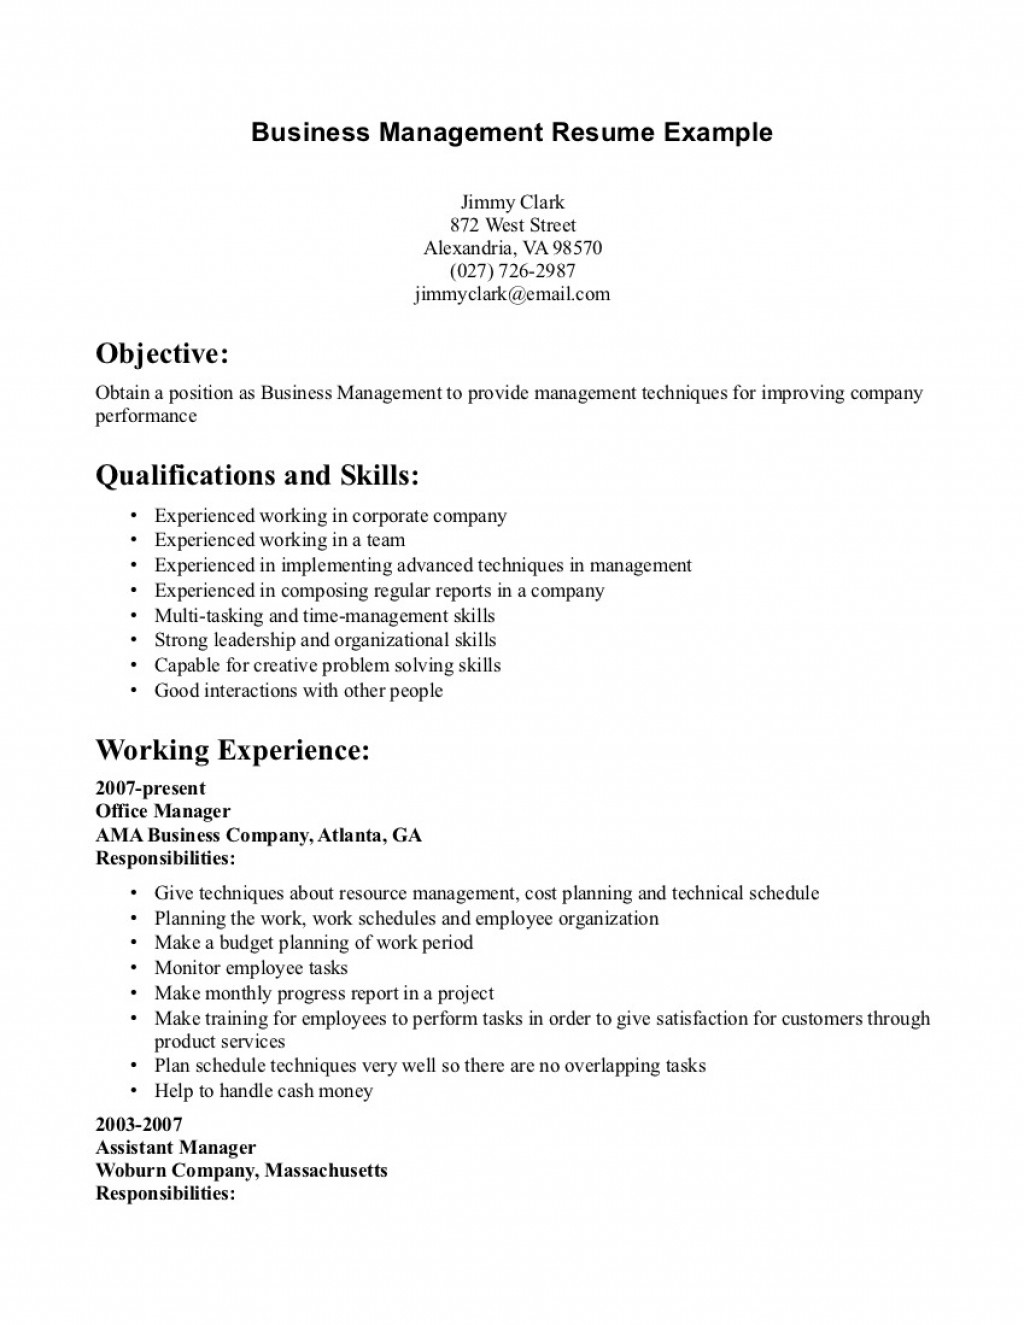 017 Business Management Resume Examples Manager And Get Inspired To Make Your With These Ideas Aeijoj Research Unforgettable Paper Topic Large